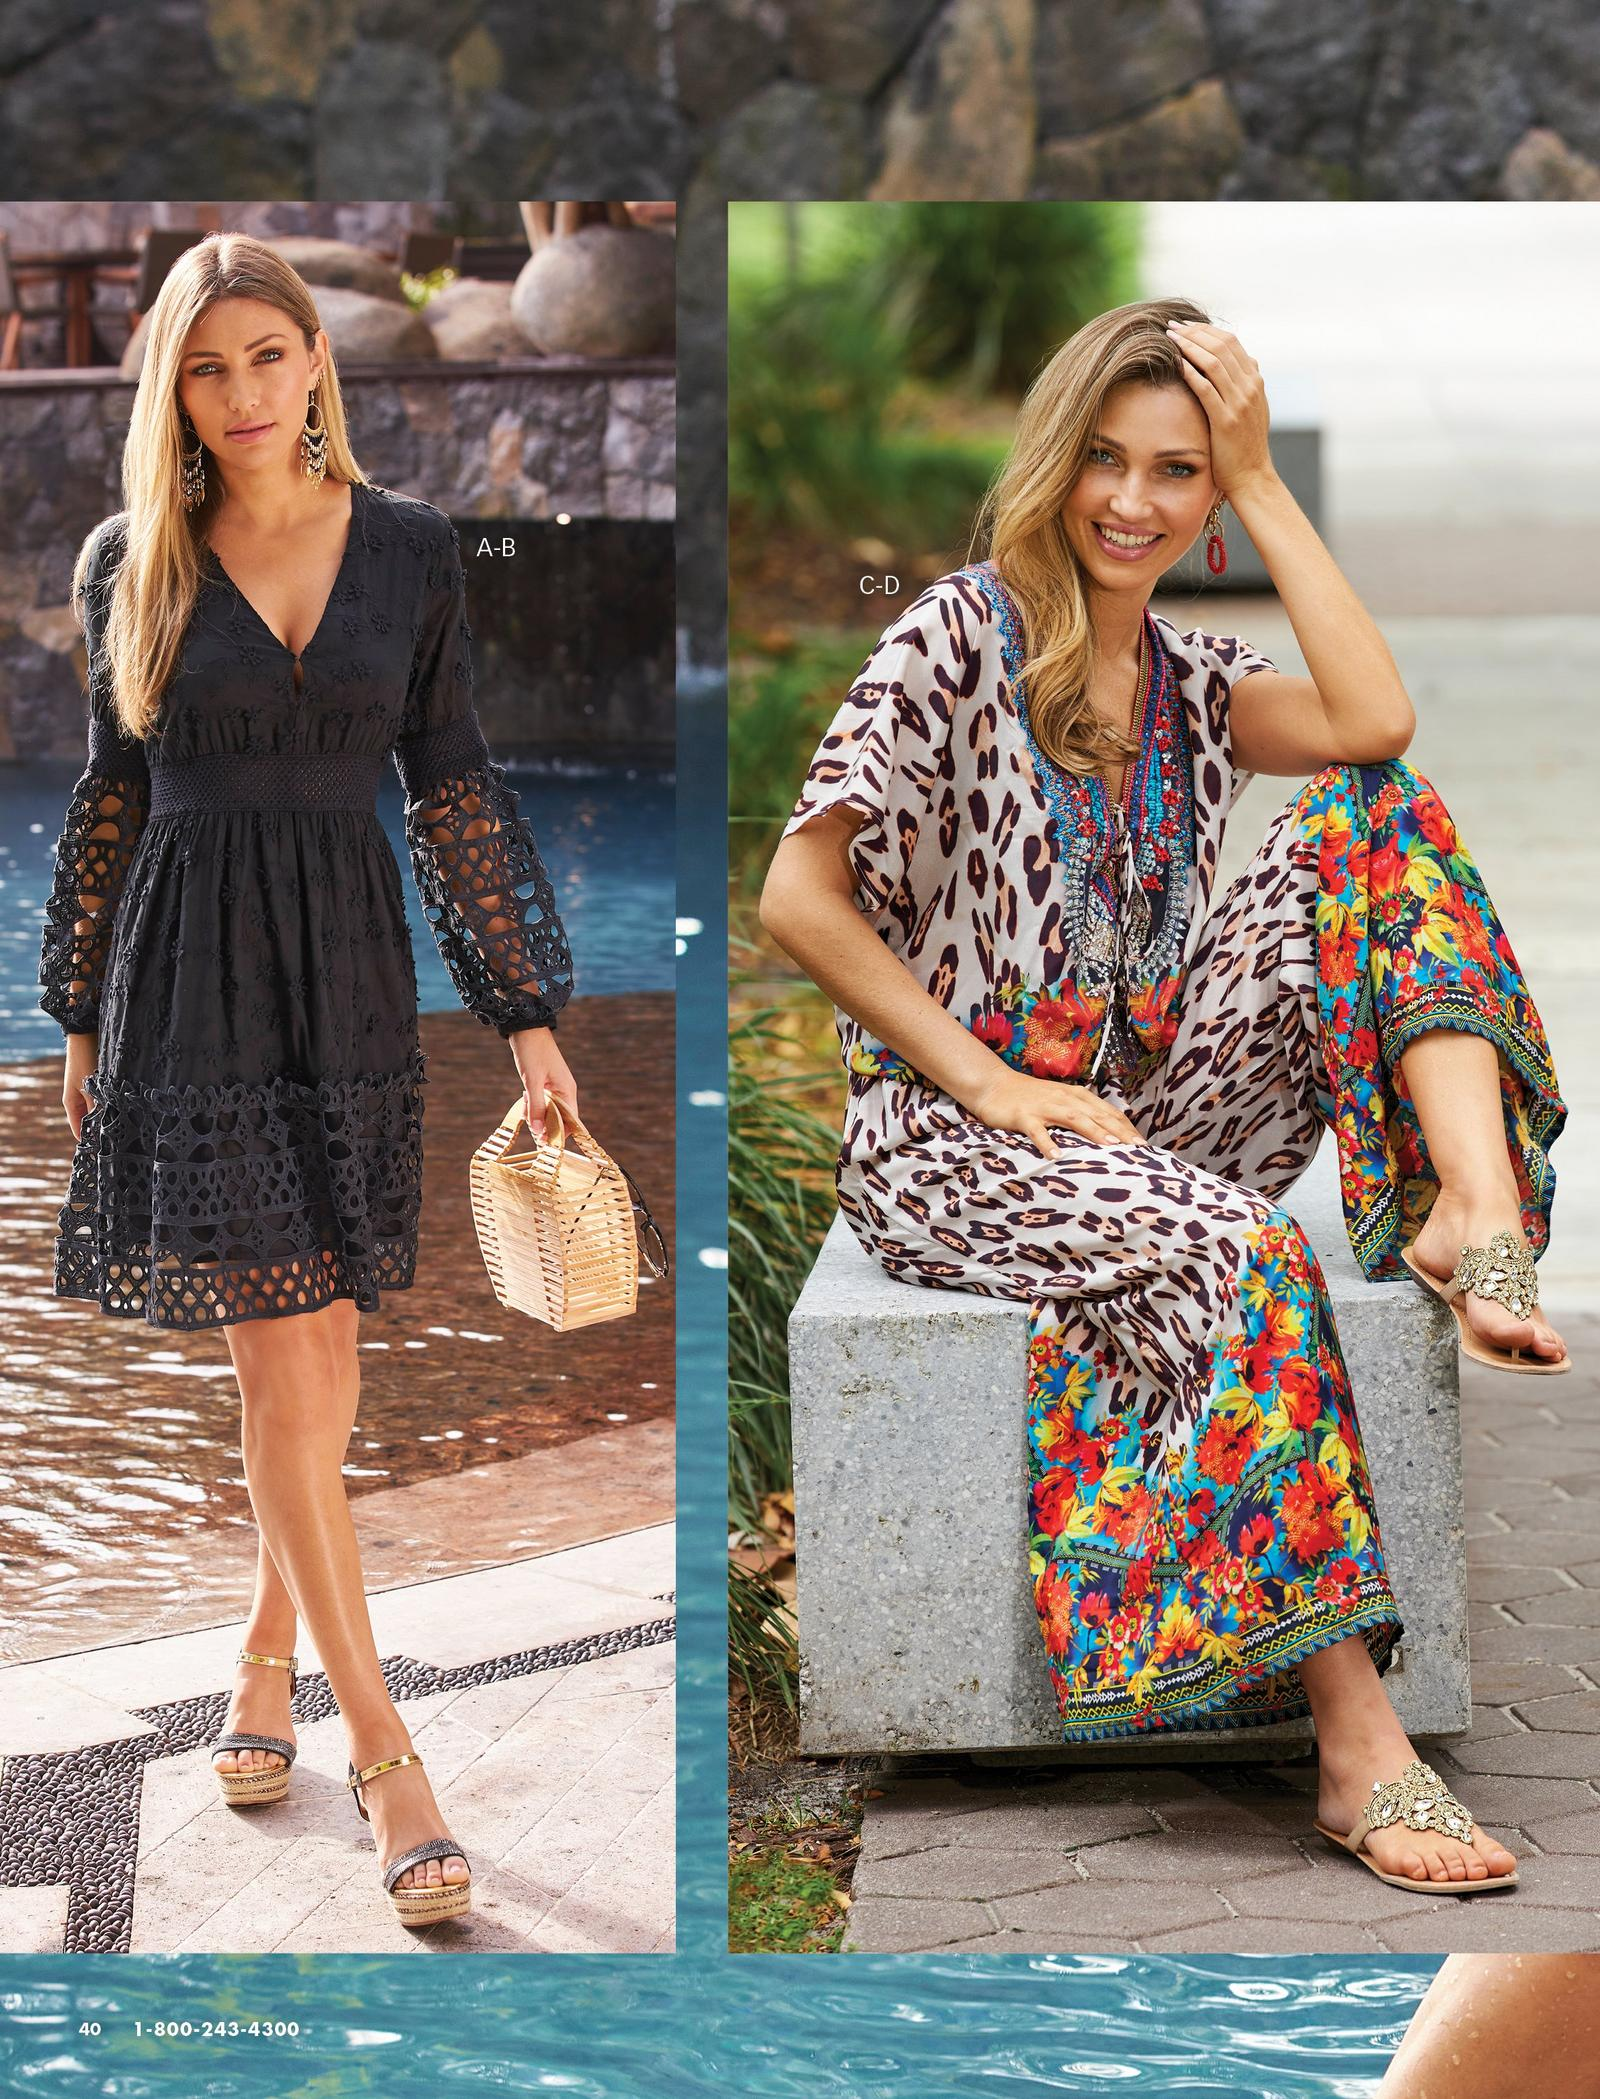 left model wearing a black long-sleeve lace dress, black and natural embellished wedges, and holding a small straw bag. right model wearing a multicolored tropical and animal print blouson jumpsuit and gold embellished sandals.